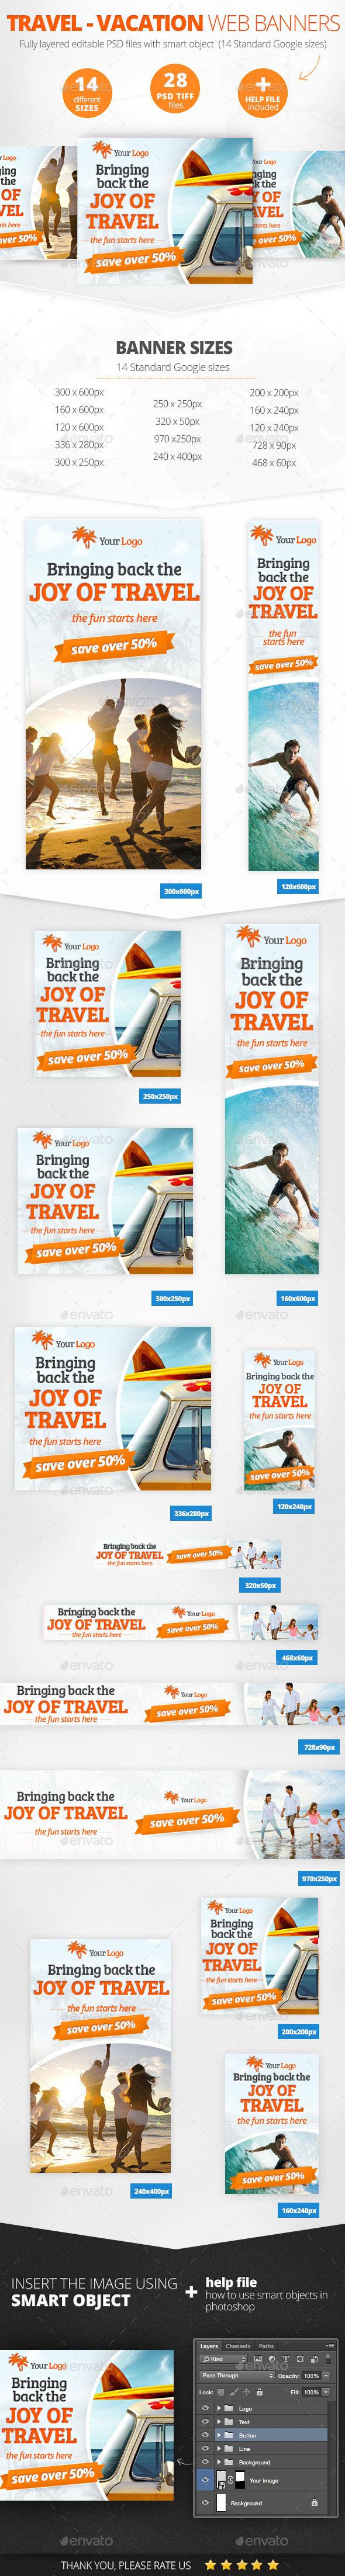 GraphicRiver Travel Vacation Web Banners 11159220